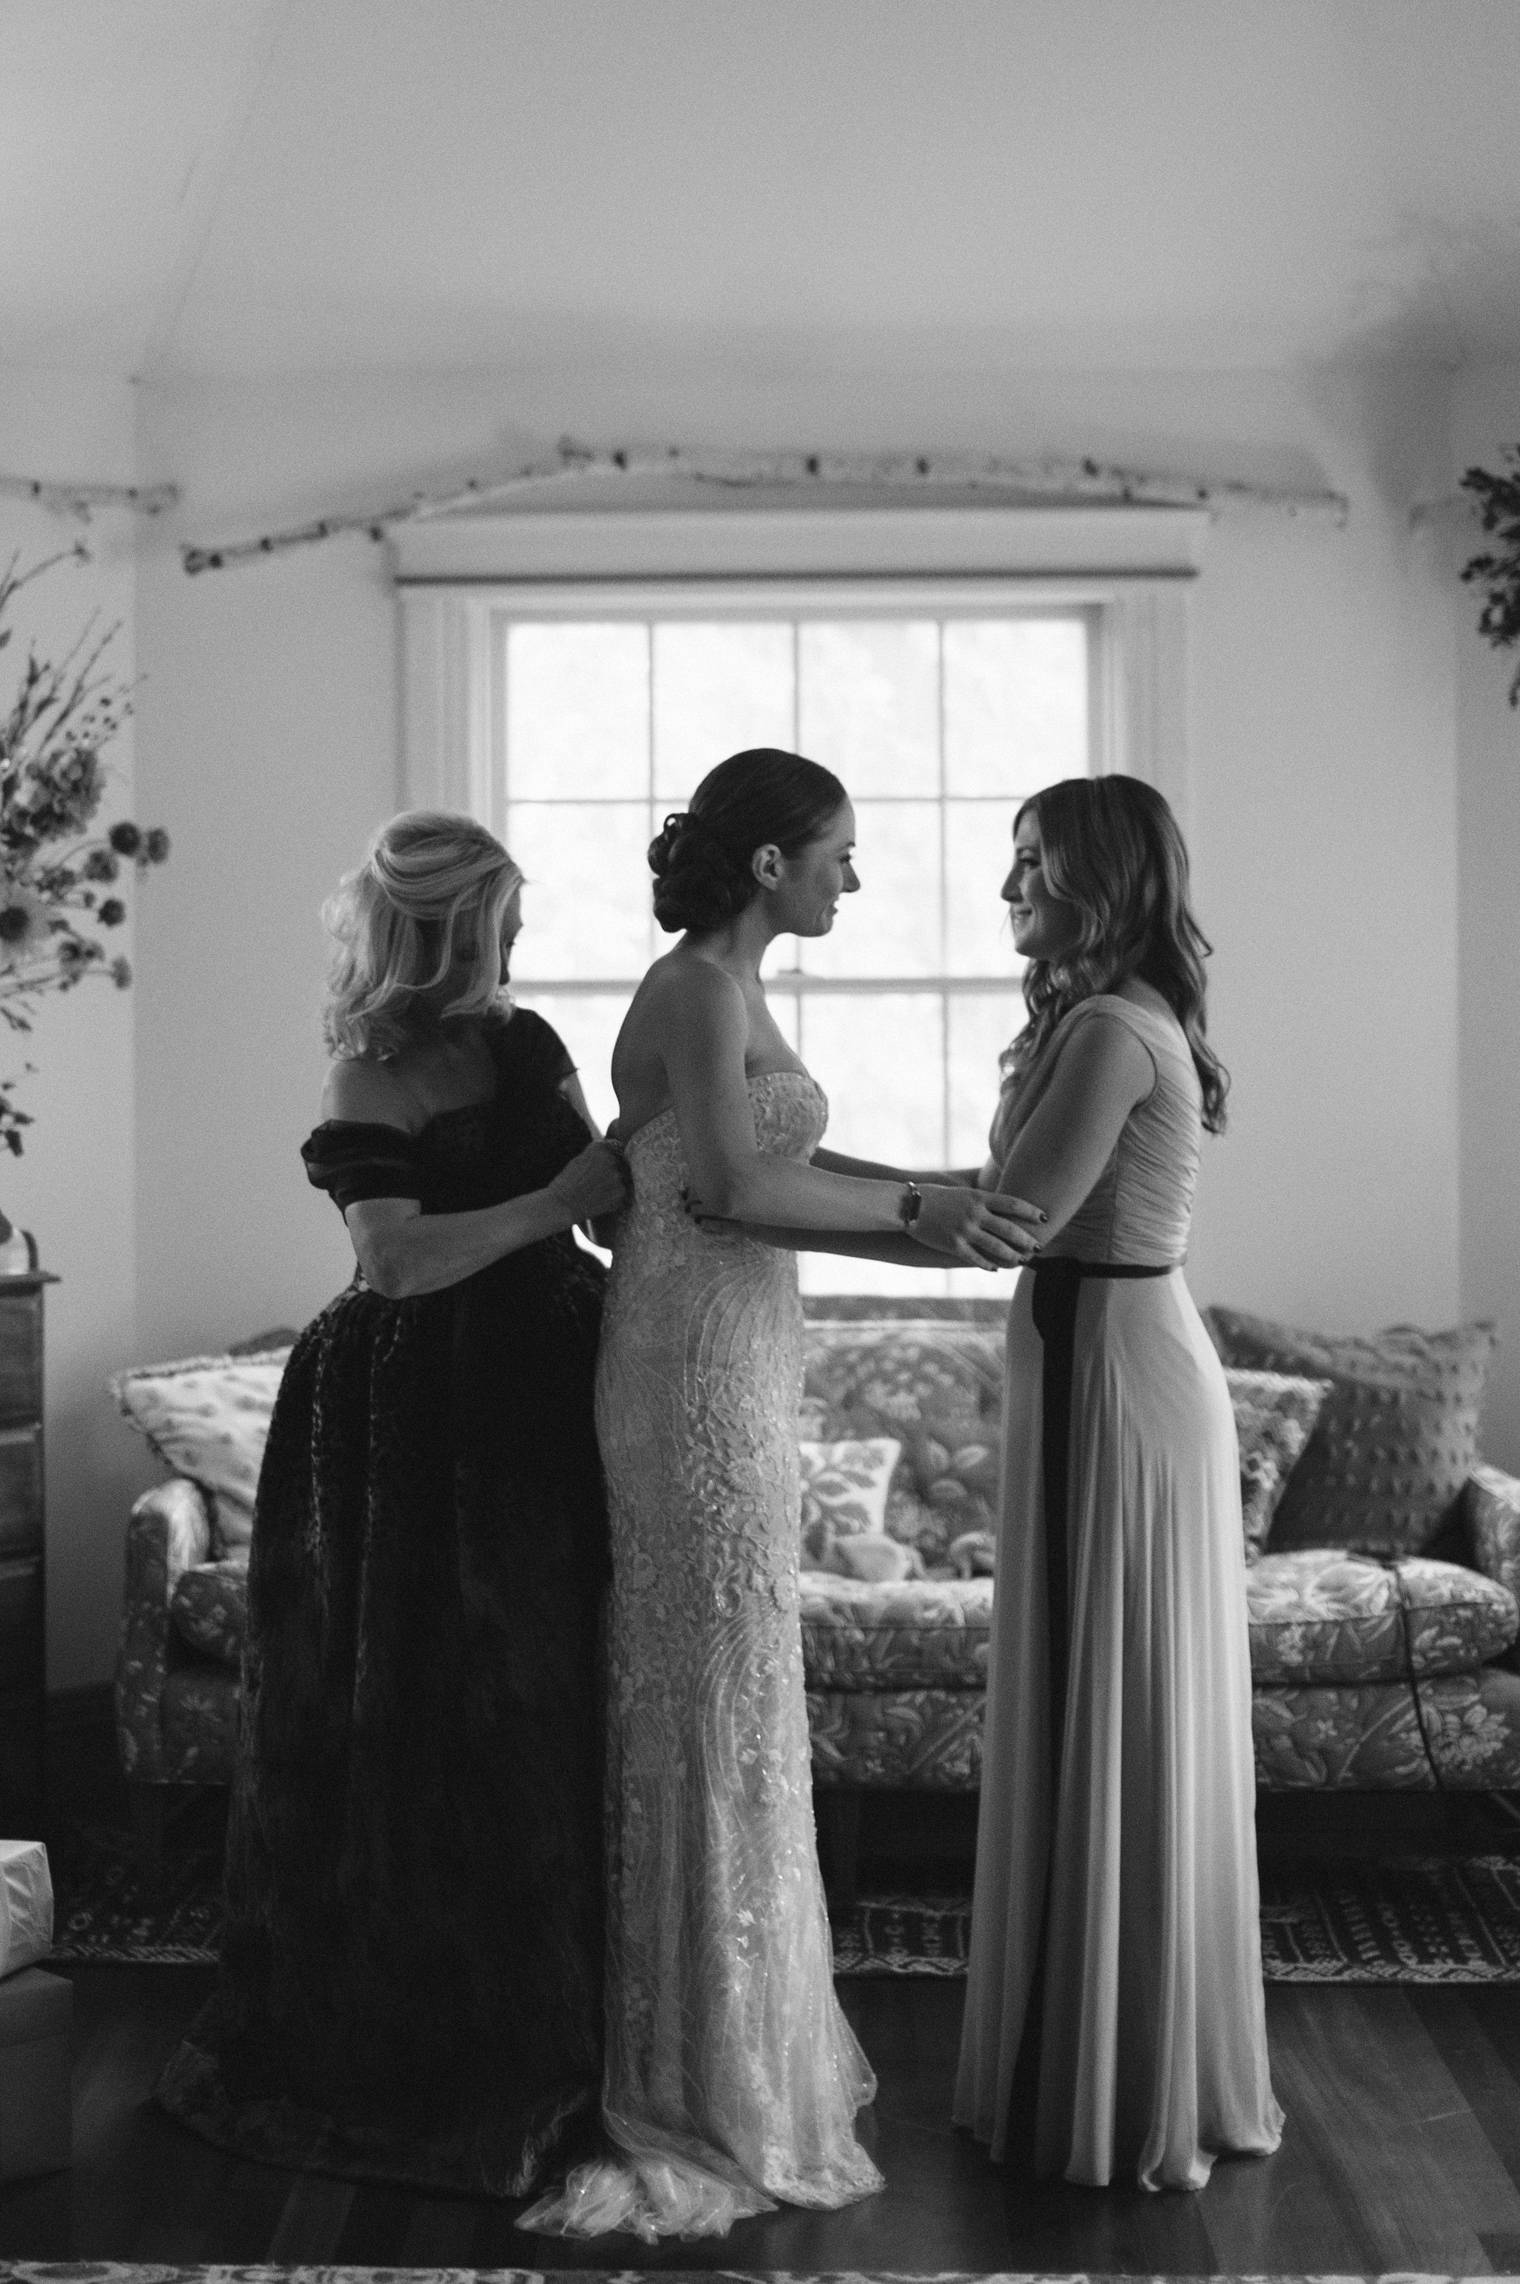 The mother of the bride and maid of honor help a bride into her Monique Lhuillier gown.